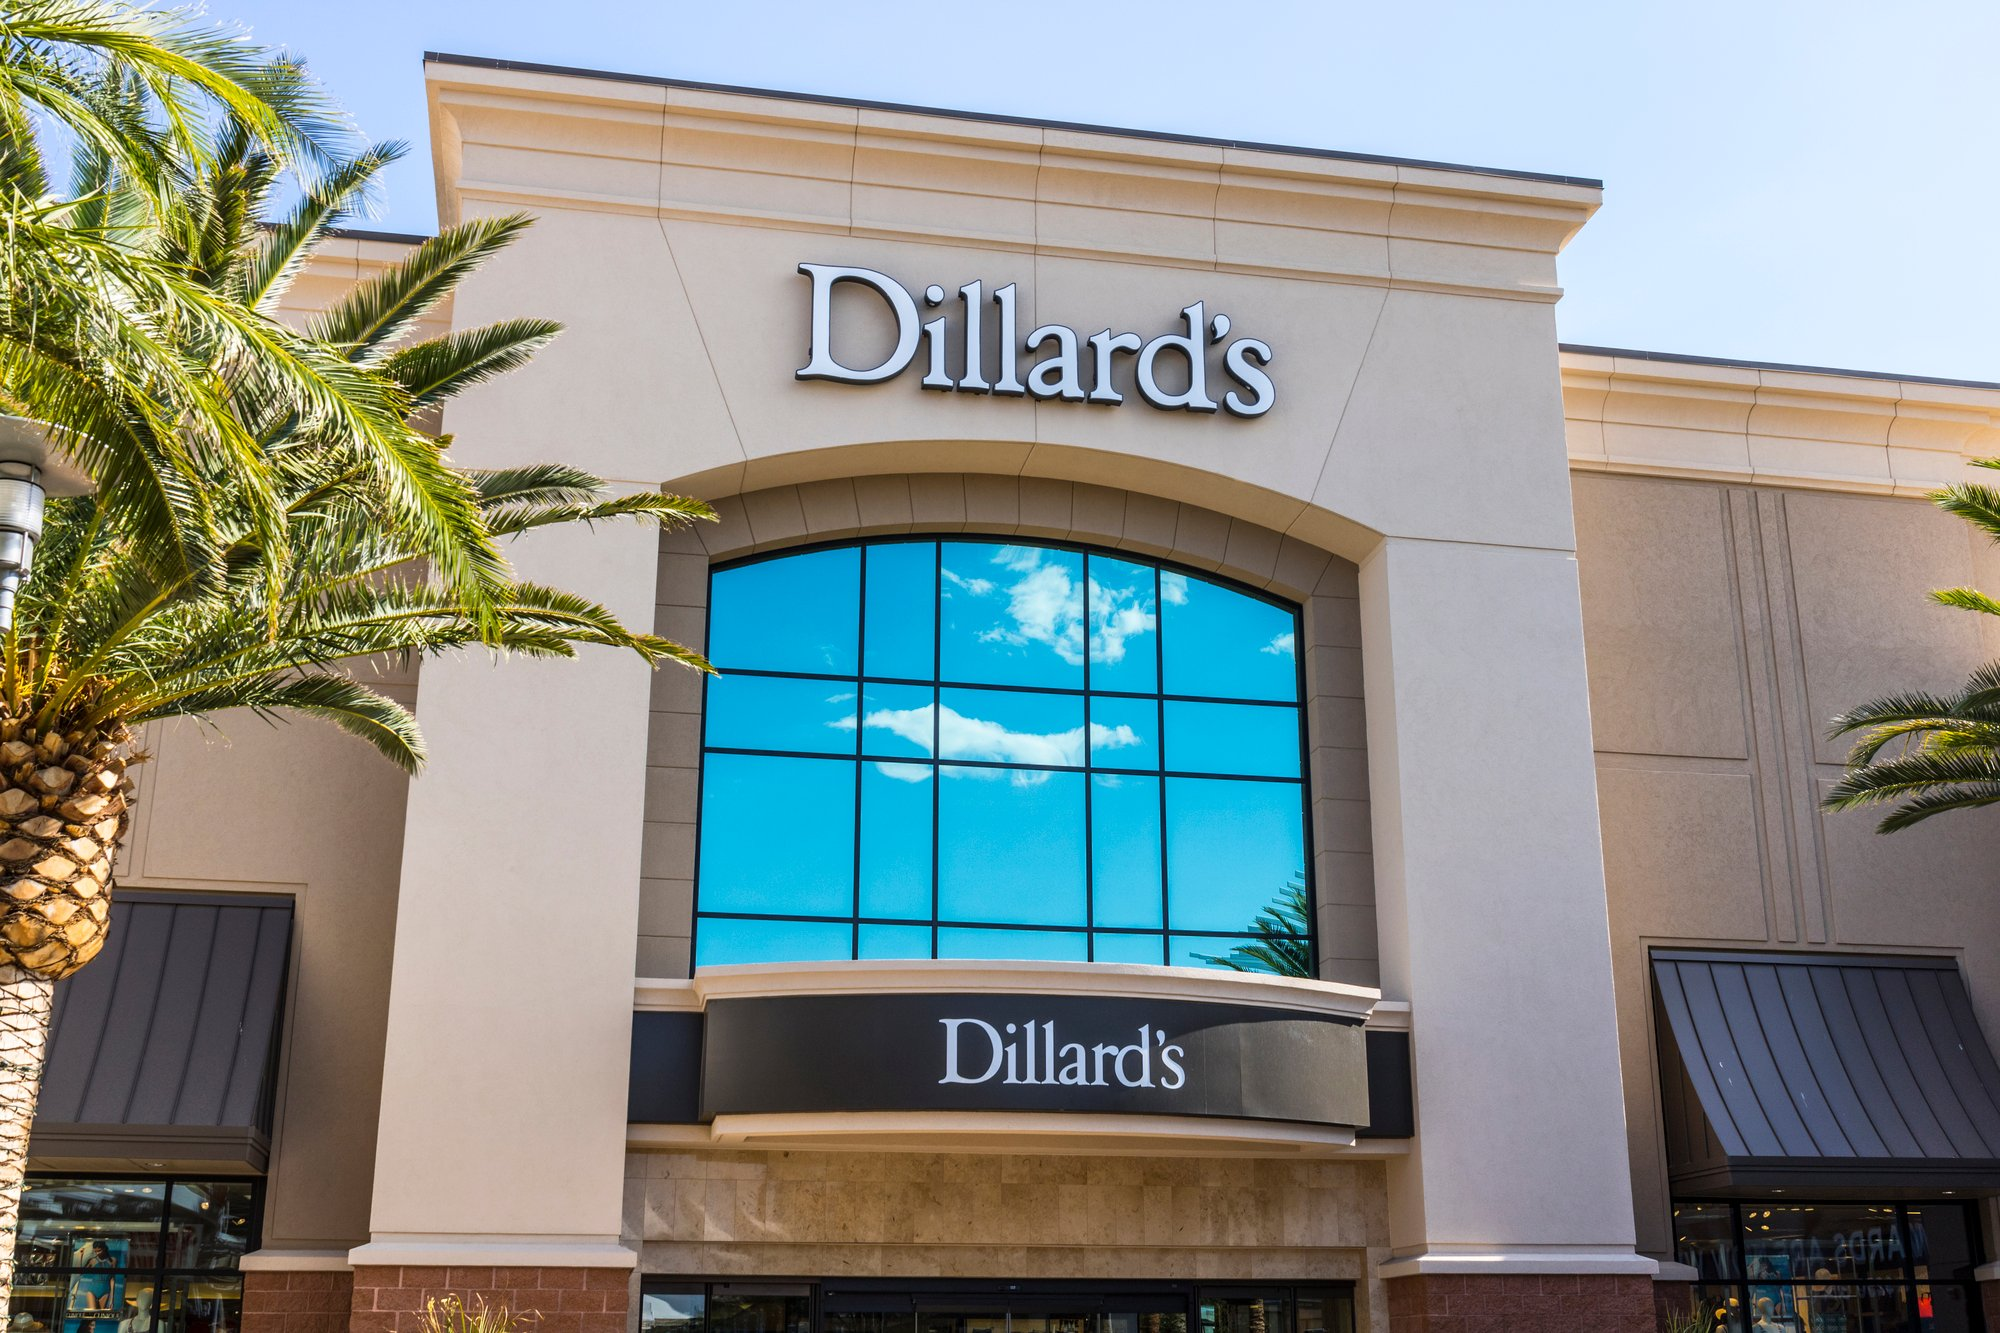 Dillards (NYSE: DDS) Stock Still a Buy Thanks to Cost Containment